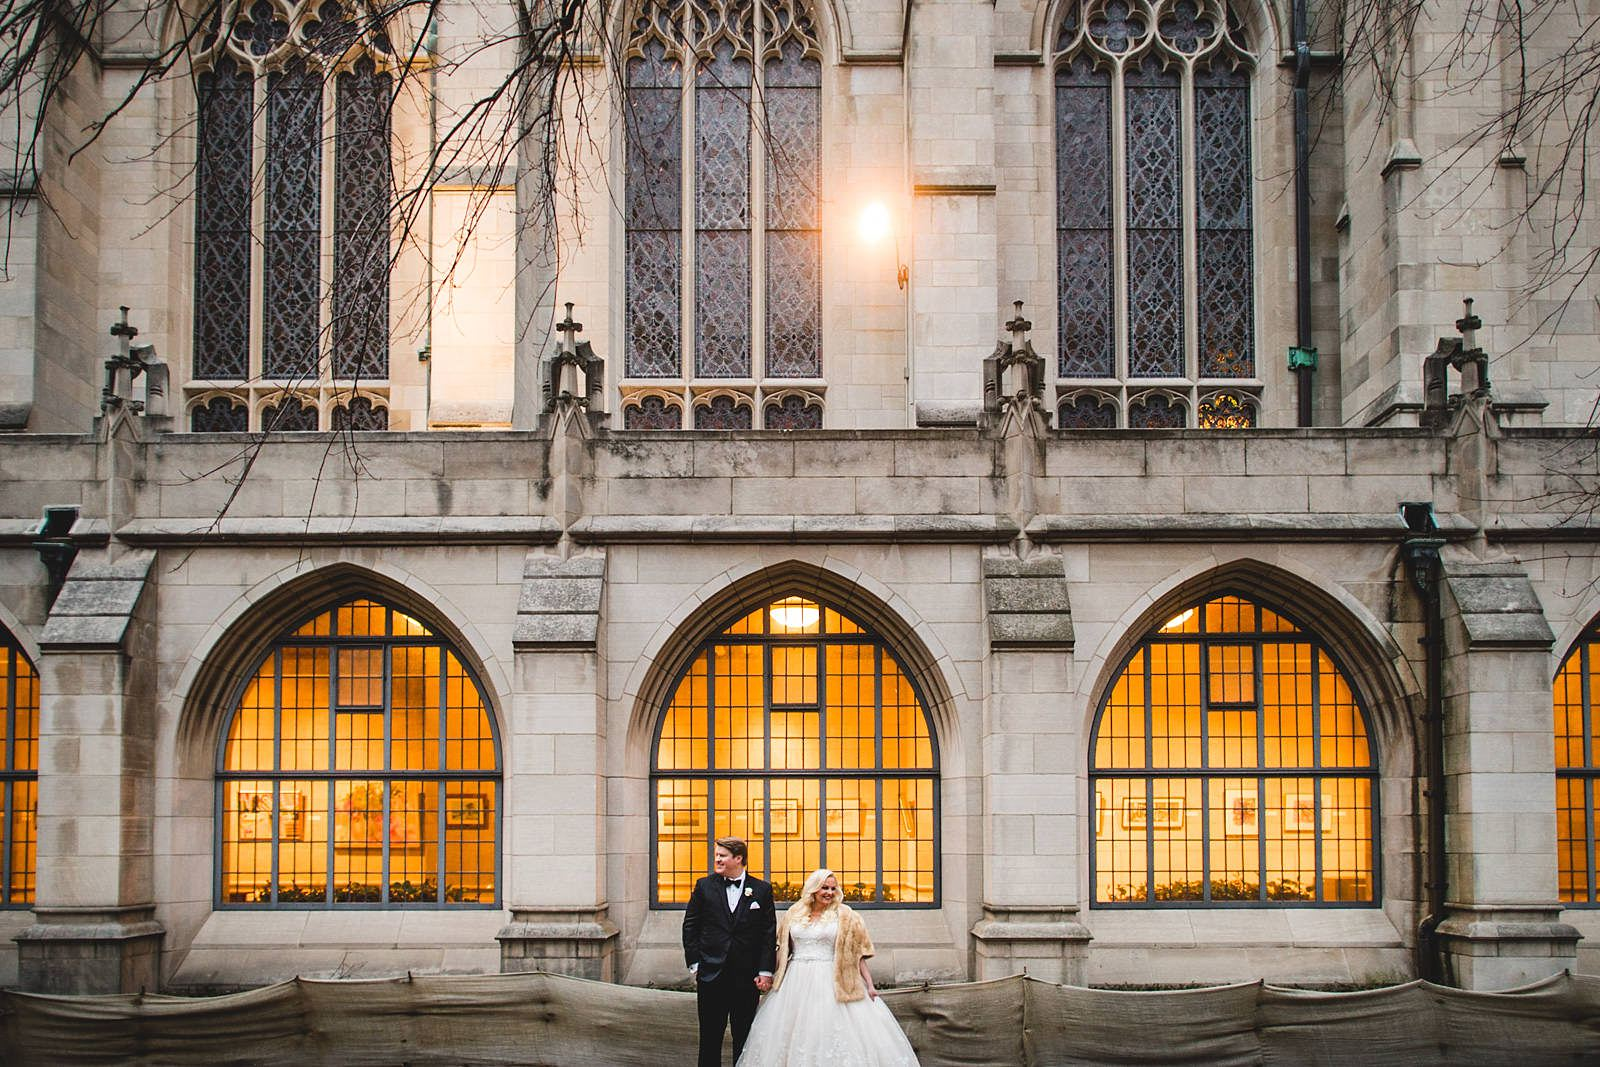 18 wedding photography in cihcago inspiration - Drake Chicago Luxury Wedding Photography // Kate + Royce